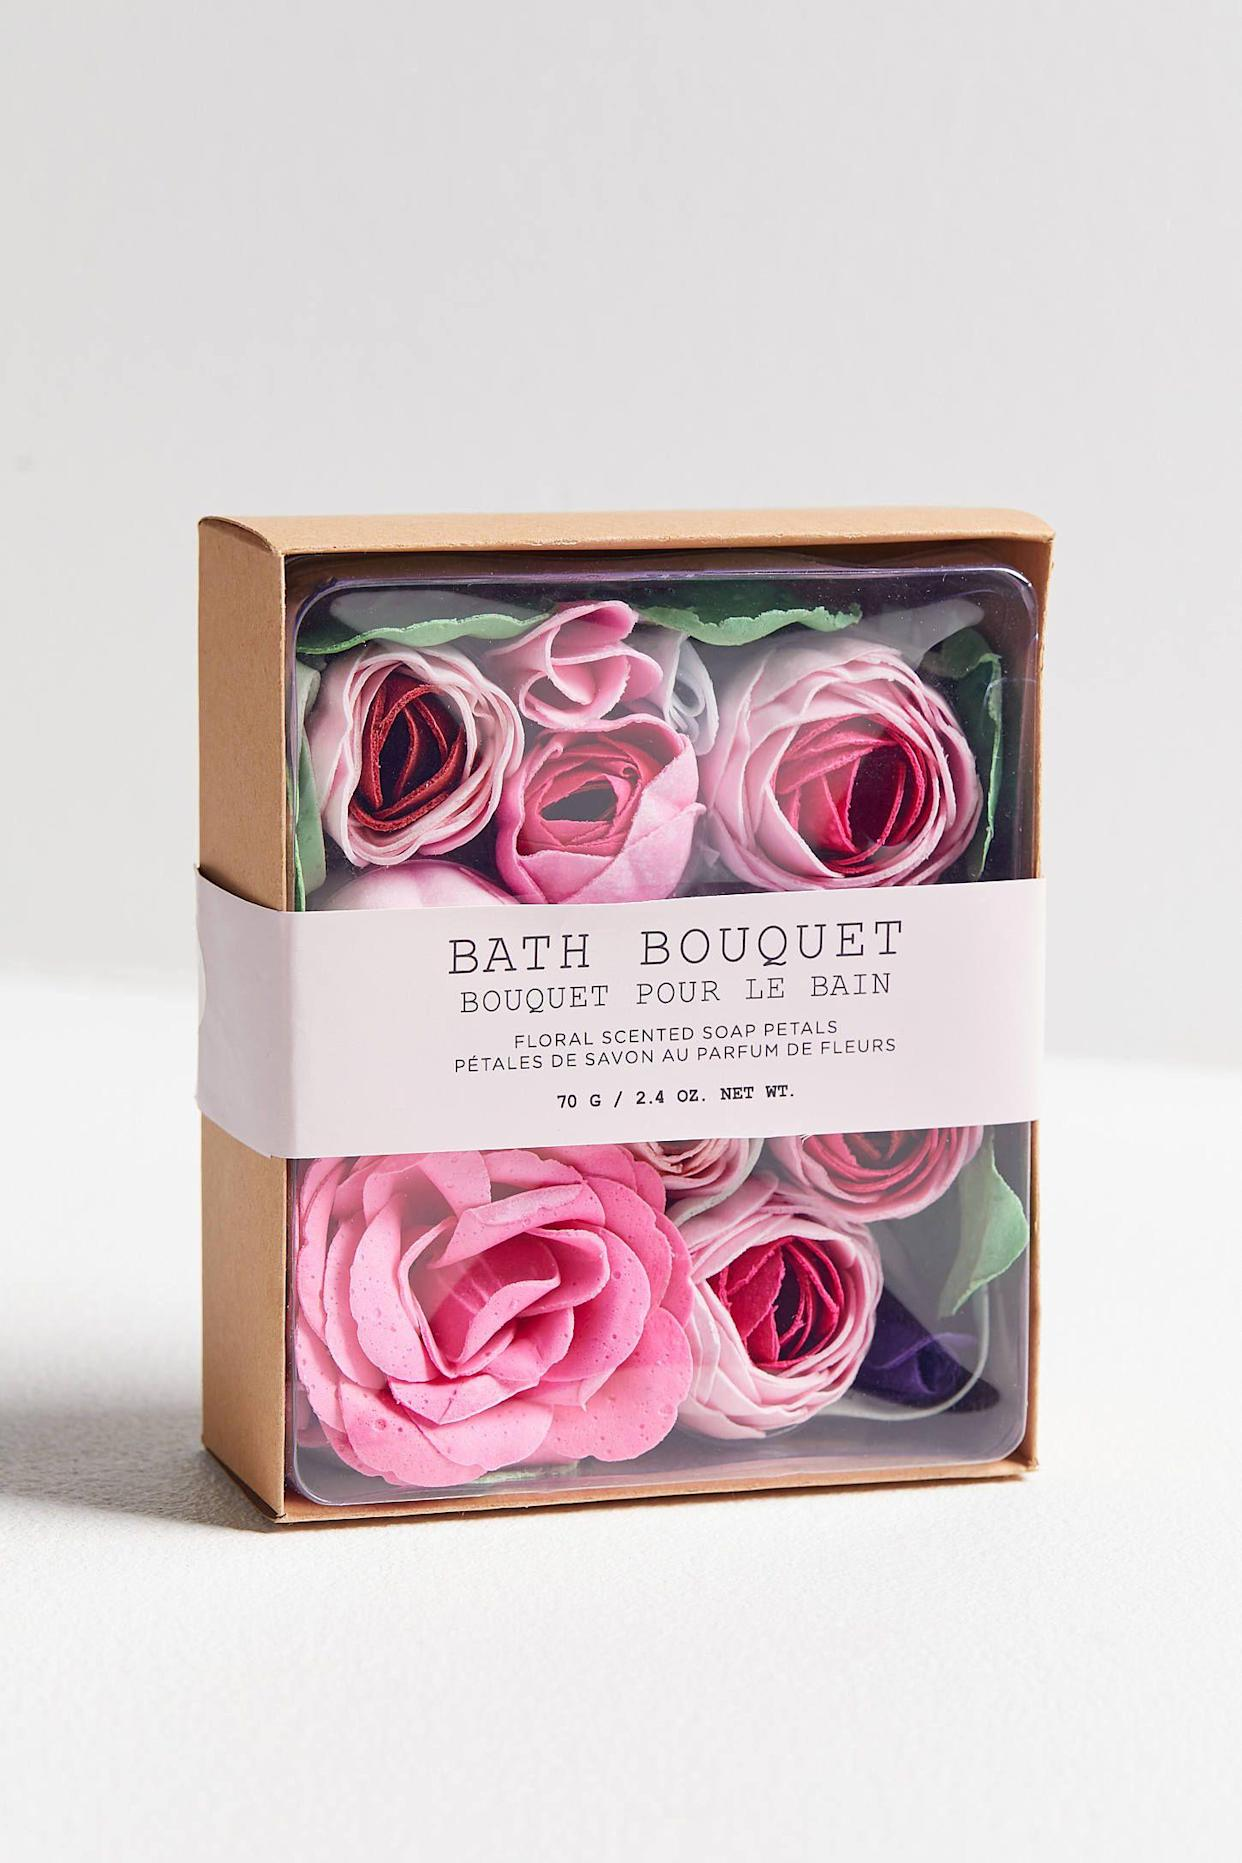 "<p><strong>The Gift: Bath Bouquet</strong><br>Again, skip the real deal flowers and try a bath bouquet instead — set the sexy scene with a trail of soap petals leading your S.O. to a drawn tub for a dual V-Day soak.</p> <br> <br> <strong>Urban Outfitters</strong> Bath Bouquet Floral-Scented Soap Petals, $14, available at <a href=""https://www.urbanoutfitters.com/shop/bath-bouquet-floral-scented-soap-petals?category=makeup-gift-sets&color=065&type=DEFAULT"" rel=""nofollow noopener"" target=""_blank"" data-ylk=""slk:Urban Outfitters"" class=""link rapid-noclick-resp"">Urban Outfitters</a>"